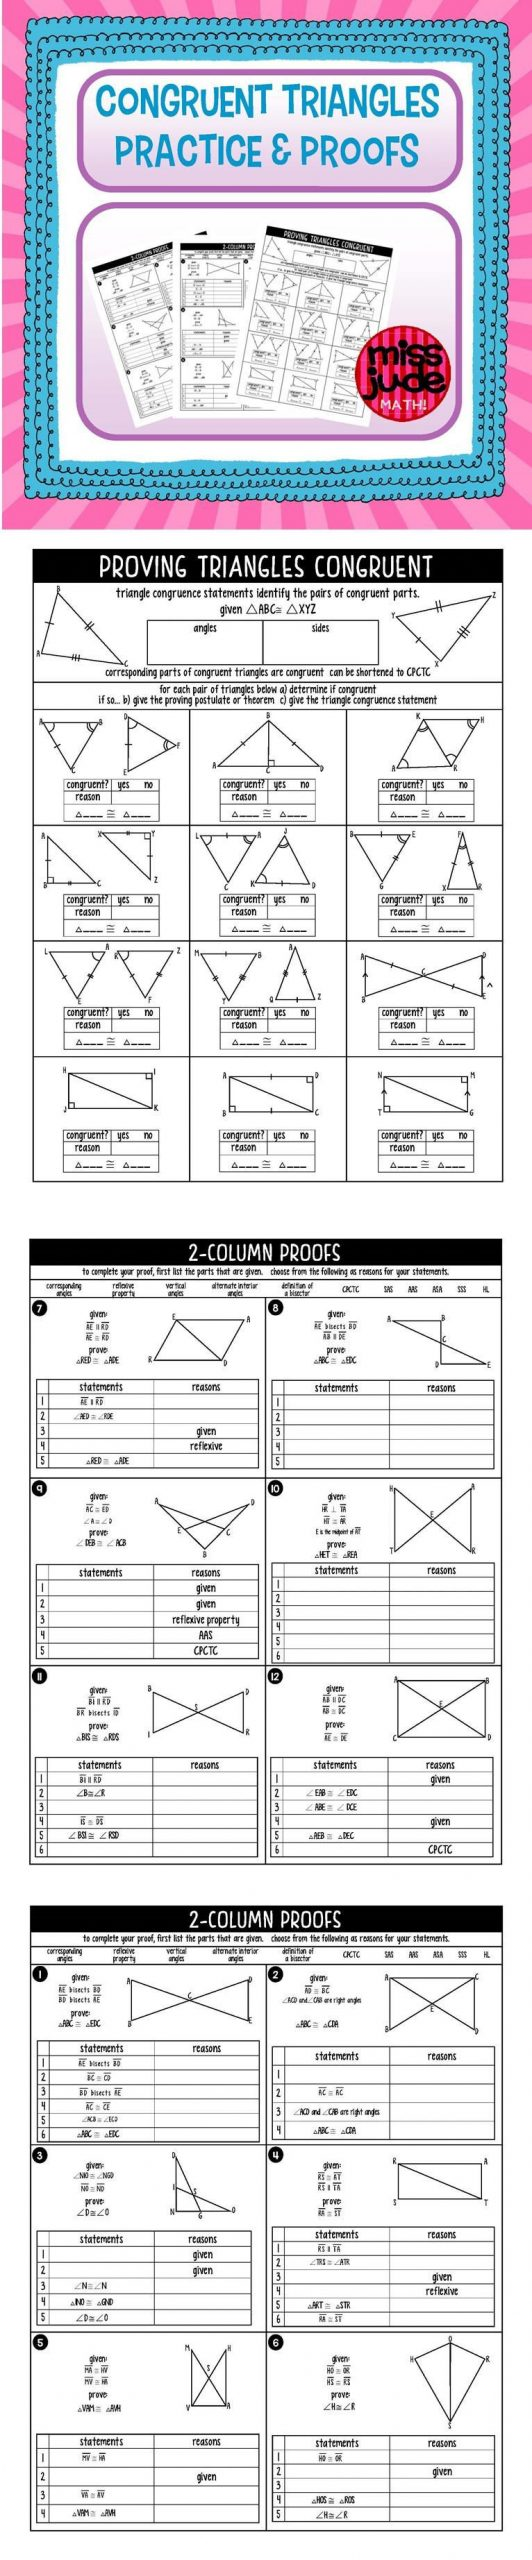 Proving Triangles Congruent Worksheet Answers Congruent Triangles Practice and Proofs Geometry